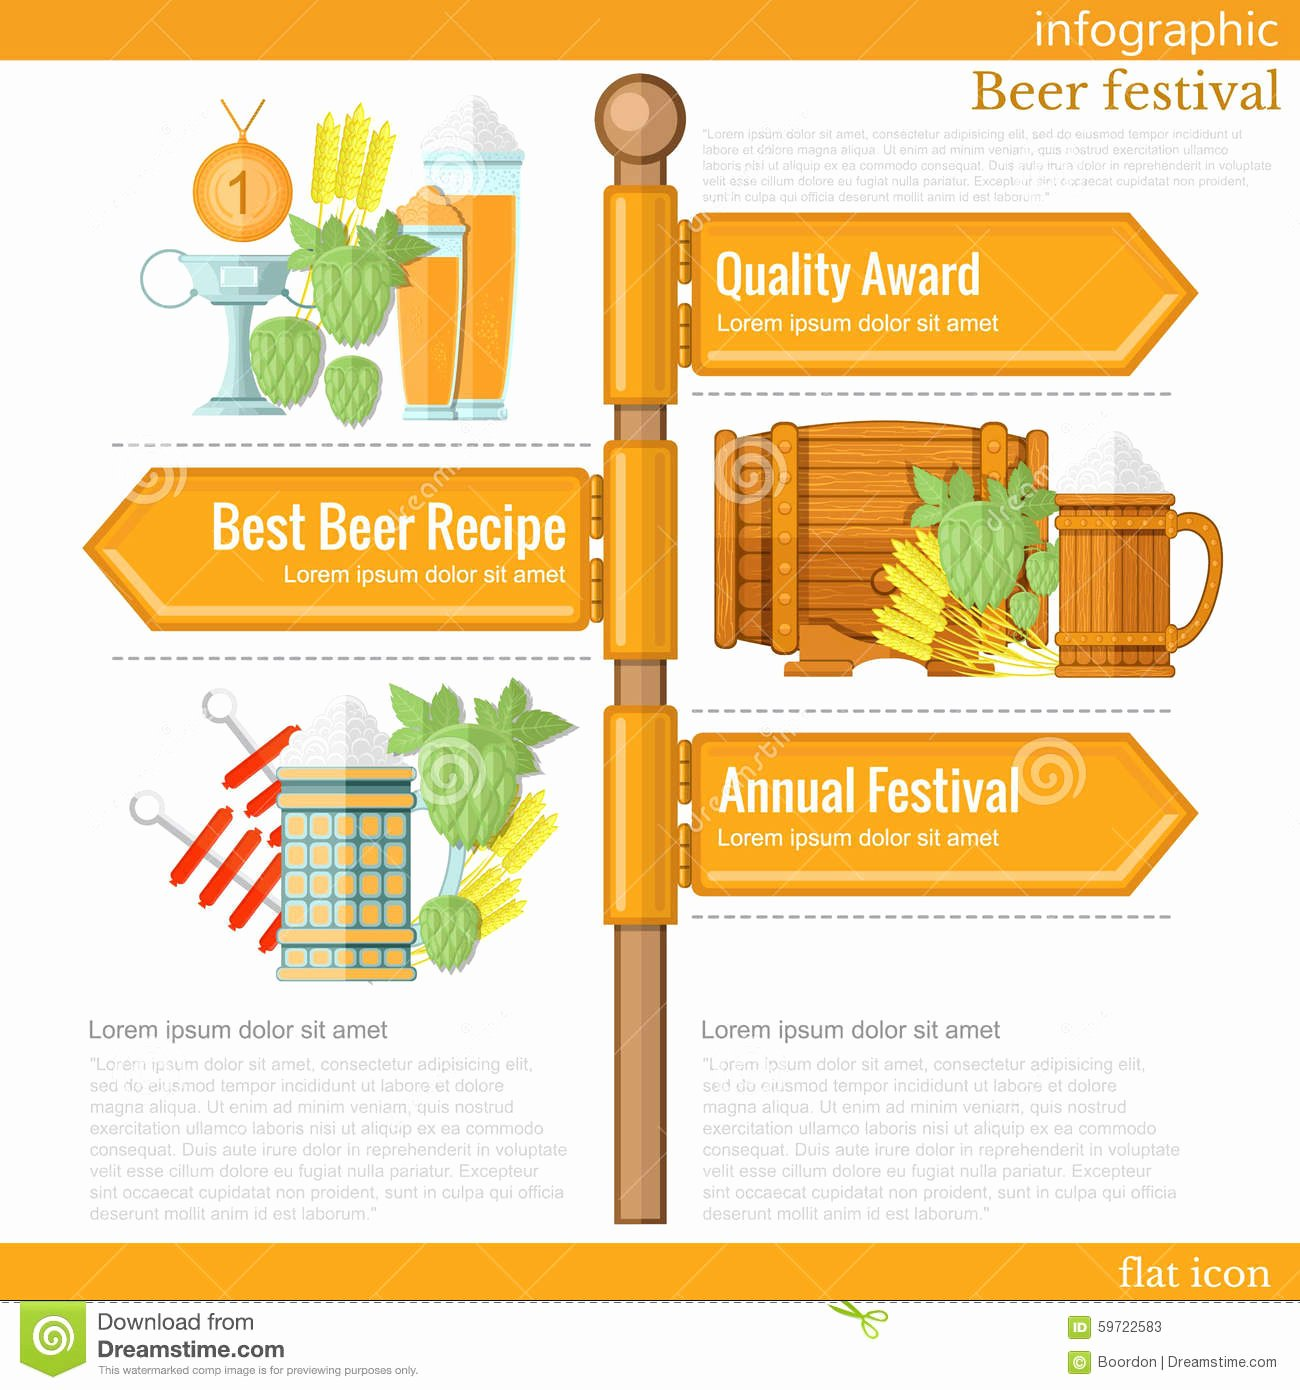 Different Kinds Of Awards Inspirational Road Sign Infographic with Different Types Beer